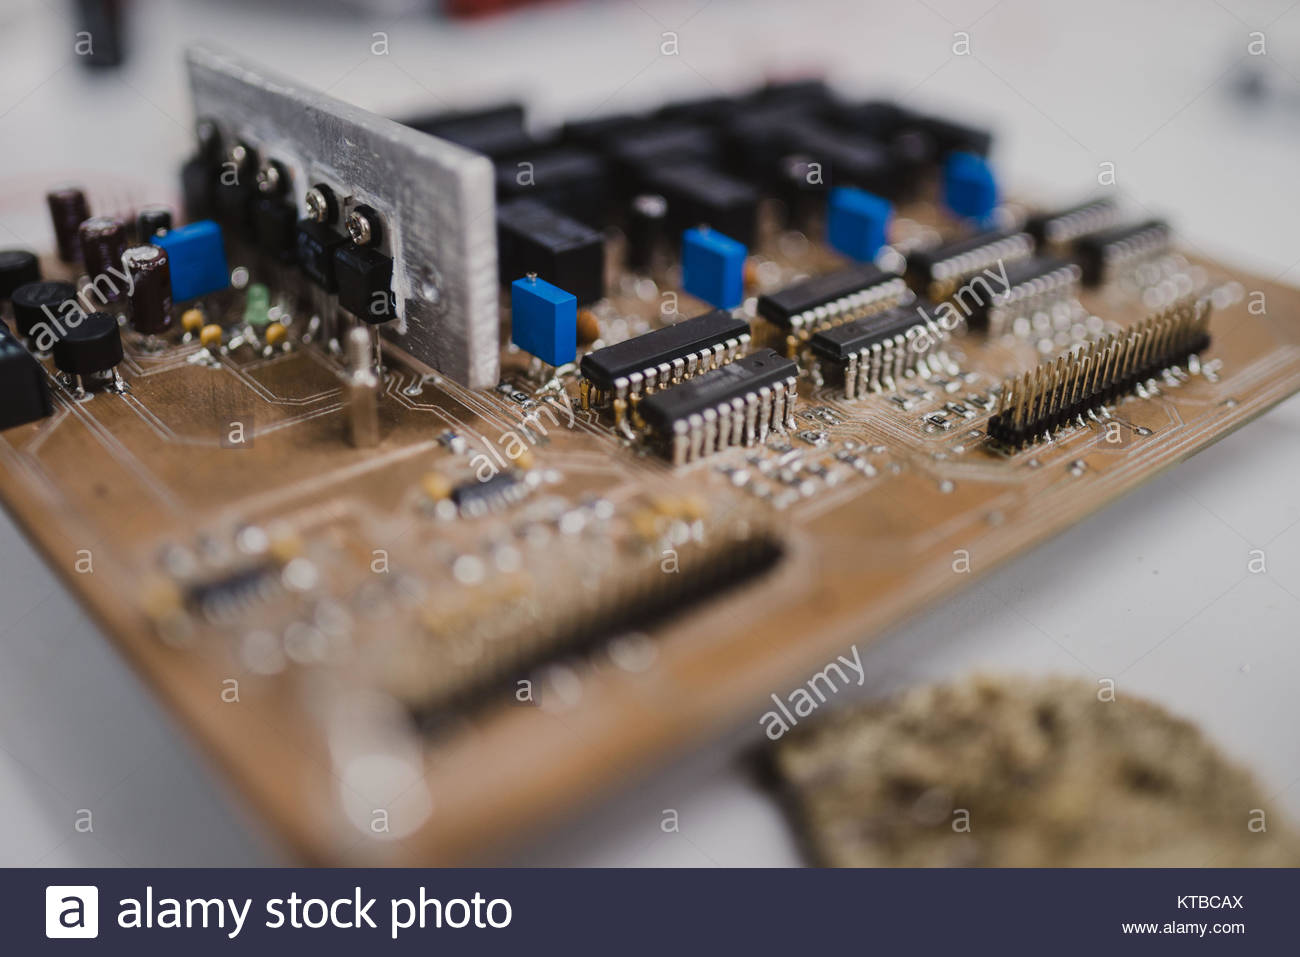 Small electronics engineering projects made by students Stock Photo ...